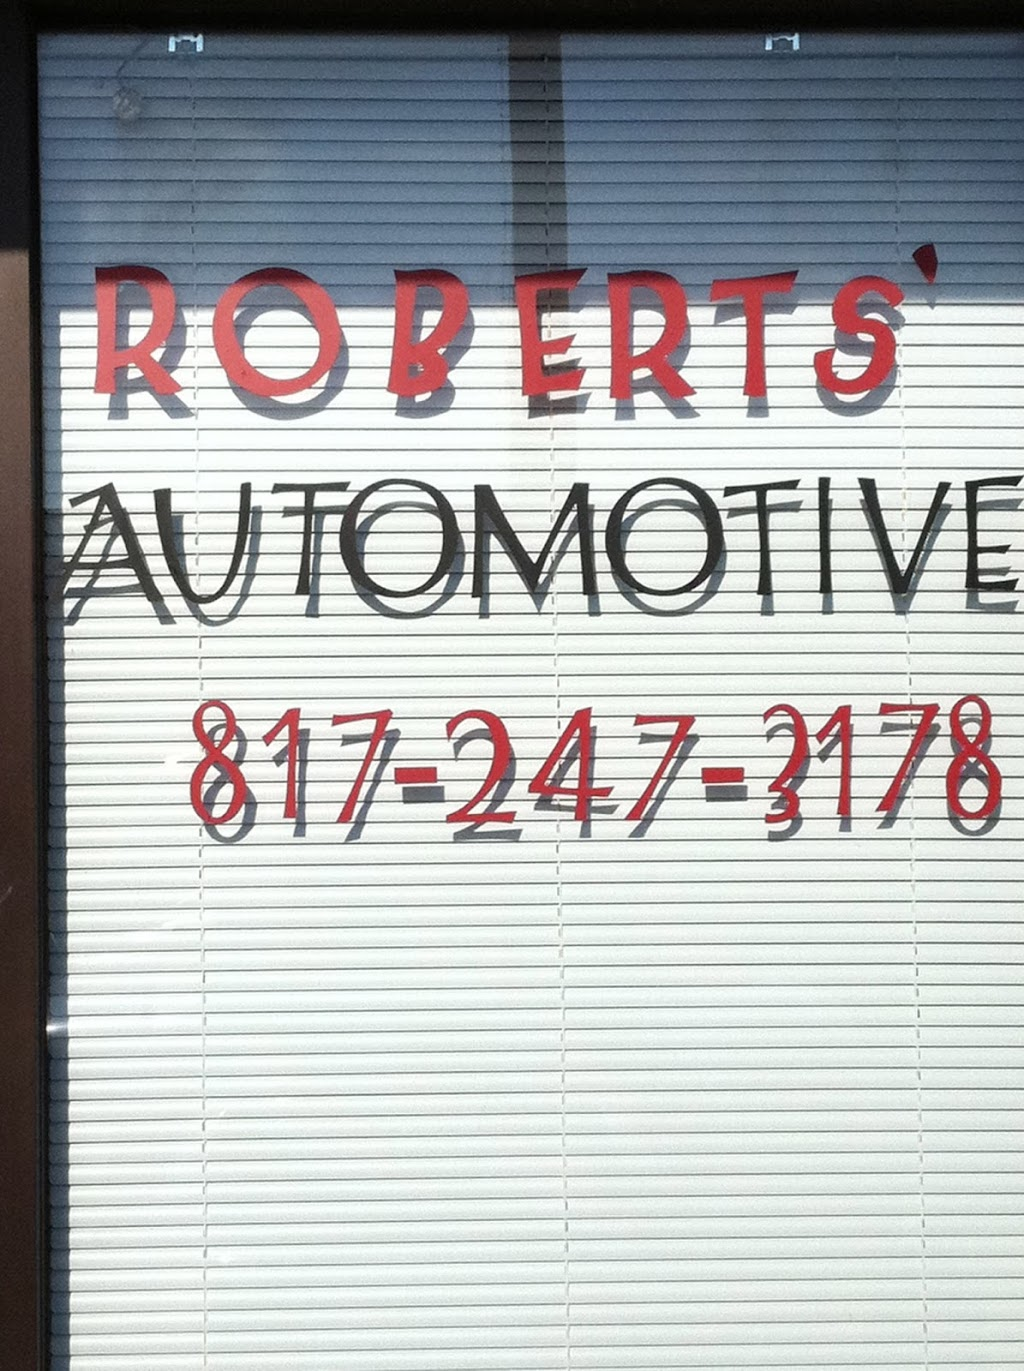 Roberts Automotive - car repair  | Photo 1 of 1 | Address: 8851 West Fwy #103, Fort Worth, TX 76116, USA | Phone: (817) 247-3178